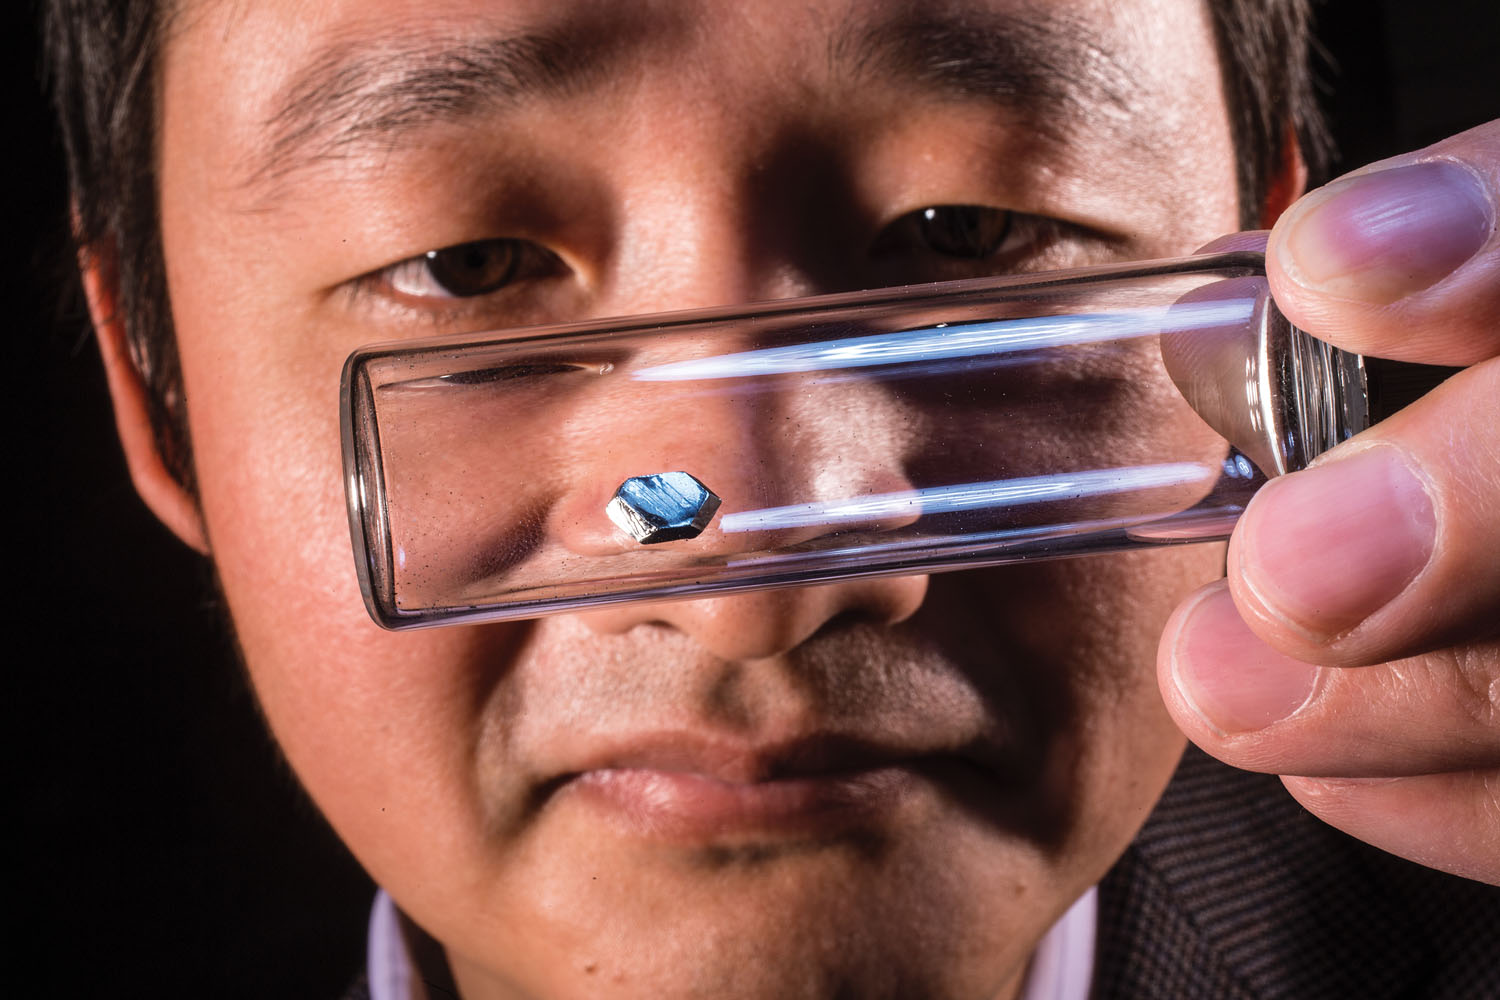 Jinsong Huang inspects a perovskite crystal grown in his UNL lab. The crystal's properties could greatly improve the electrical devices we use.